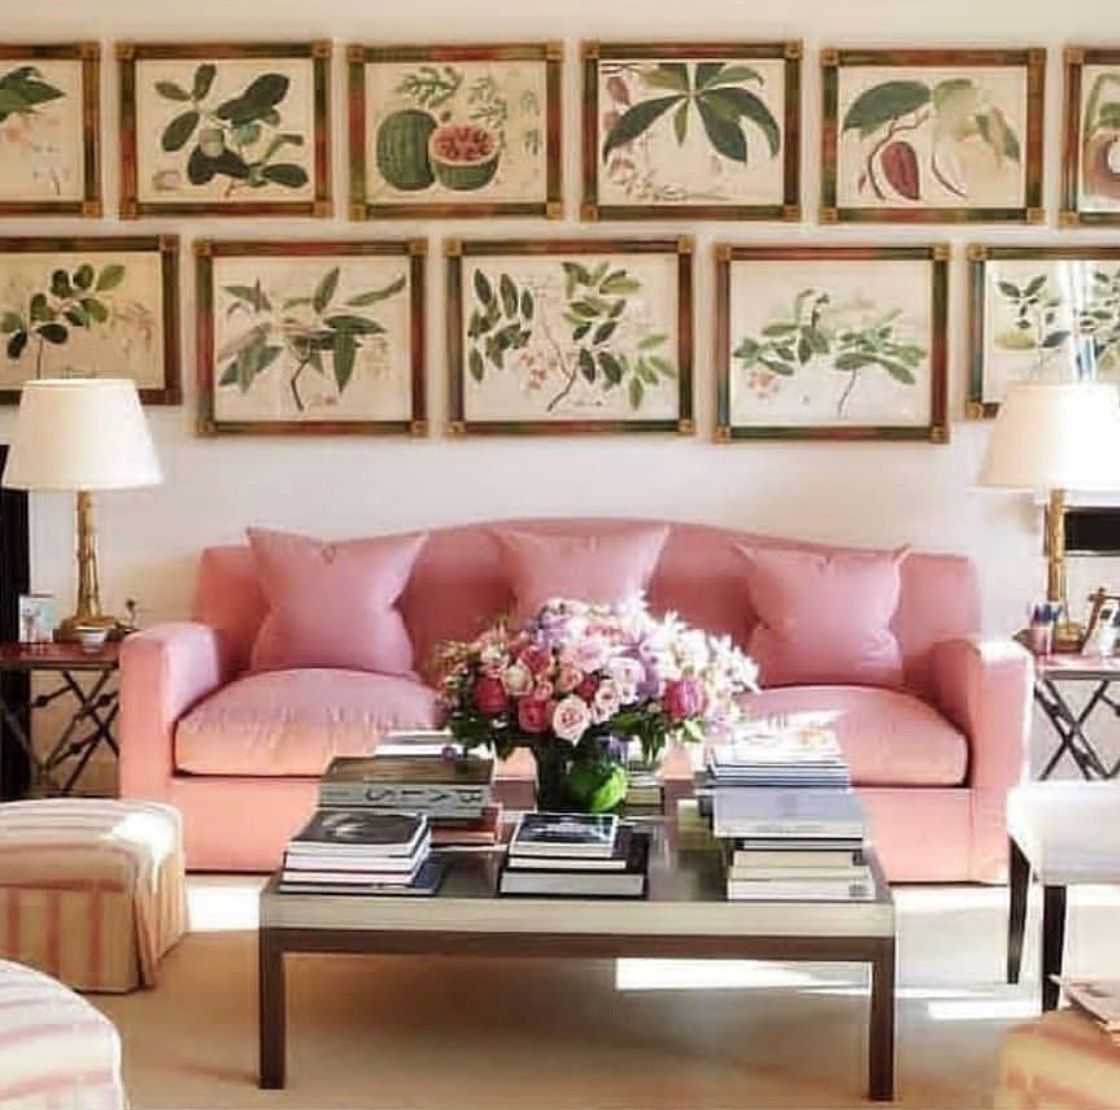 Pin By ItsThePictures On UPHOLSTERED PIECES